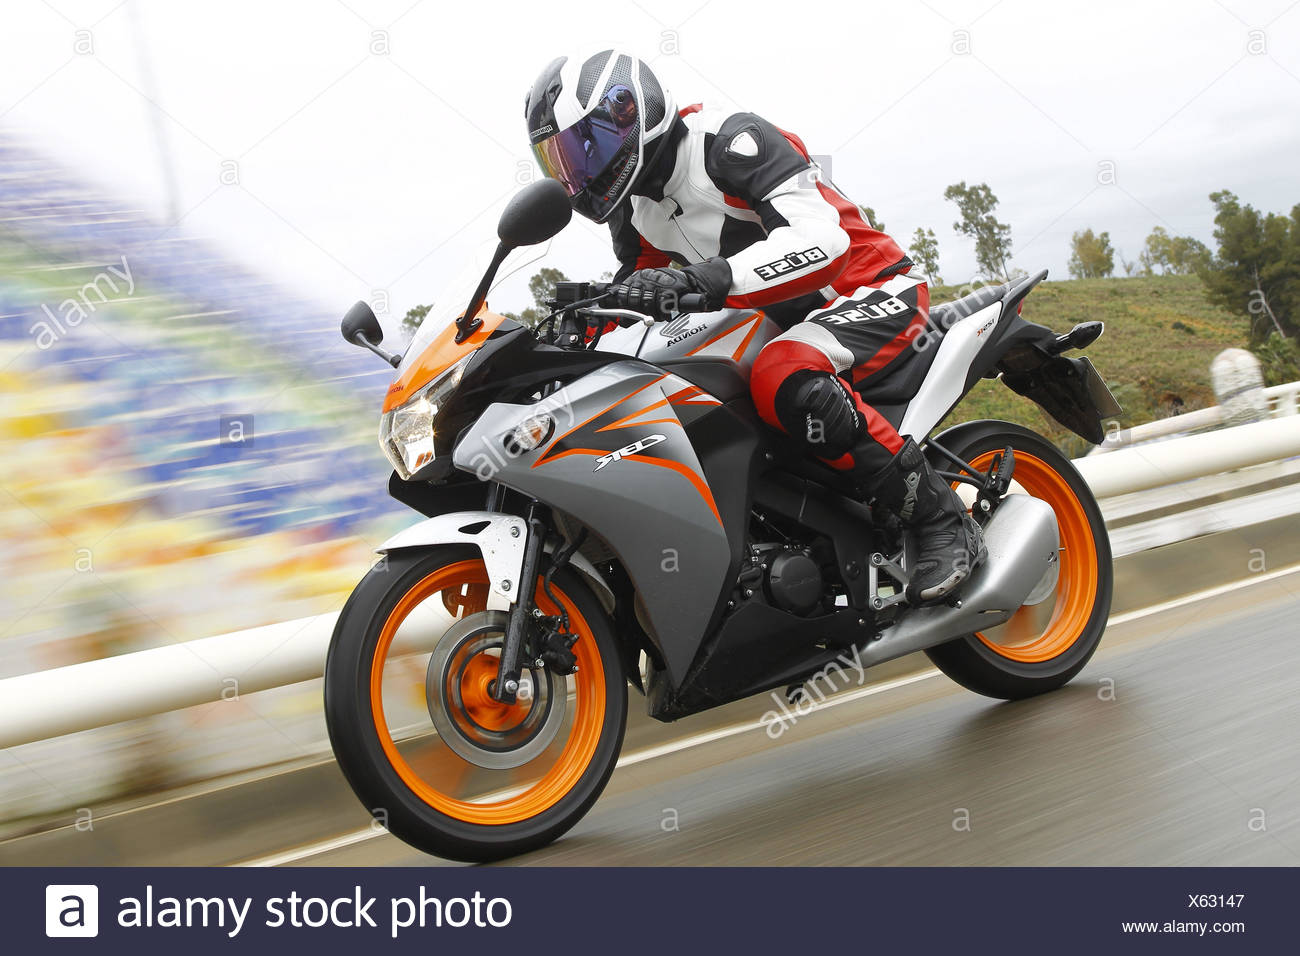 Motorcycle, Honda CBR 125R, blurred motion, moving, - Stock Image